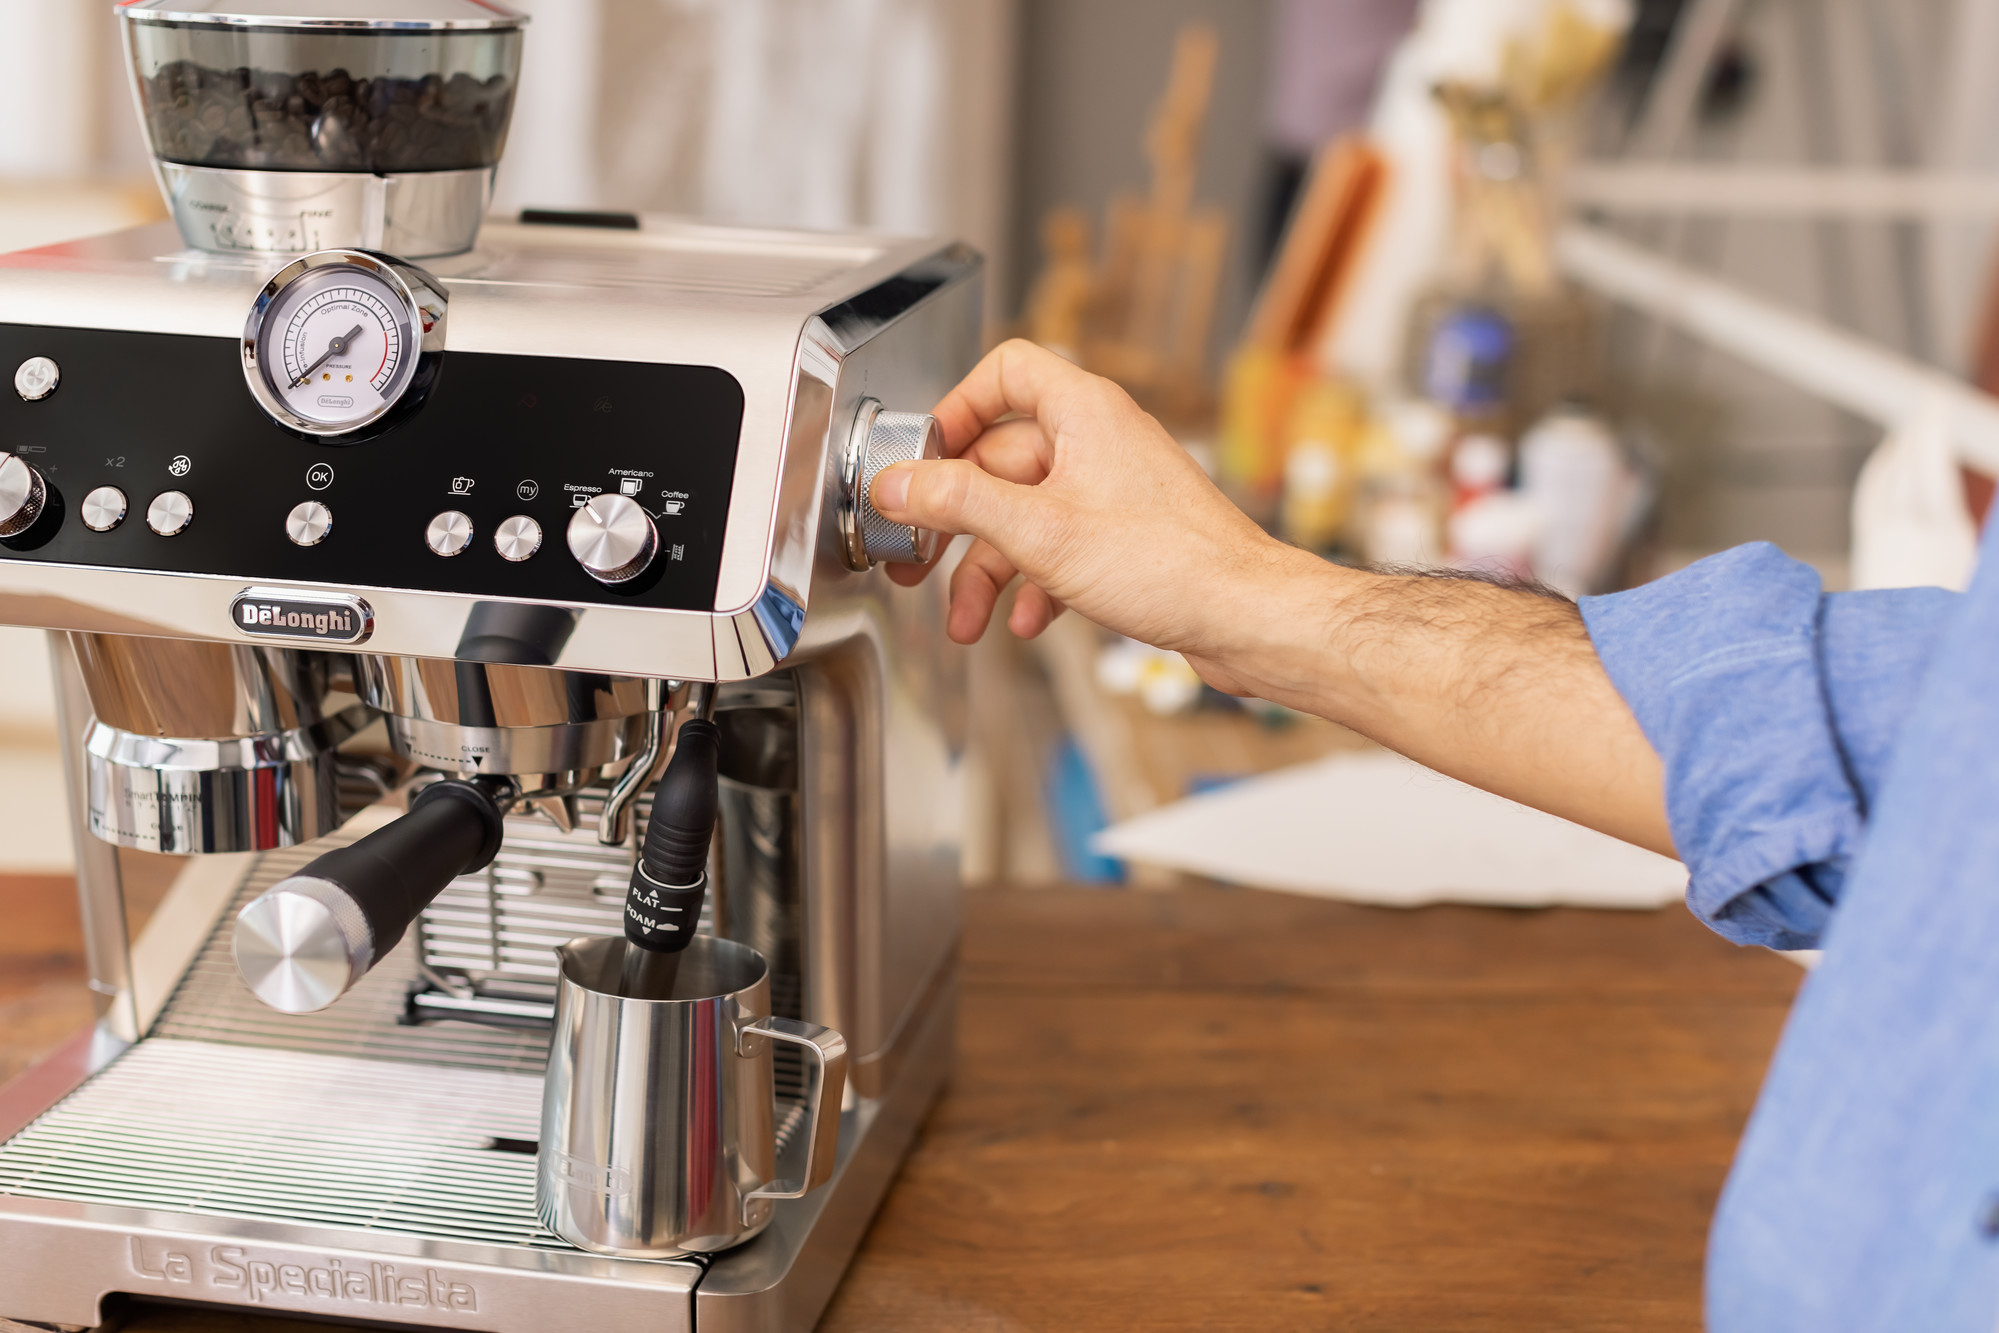 person holding a coffee machine's steam wand